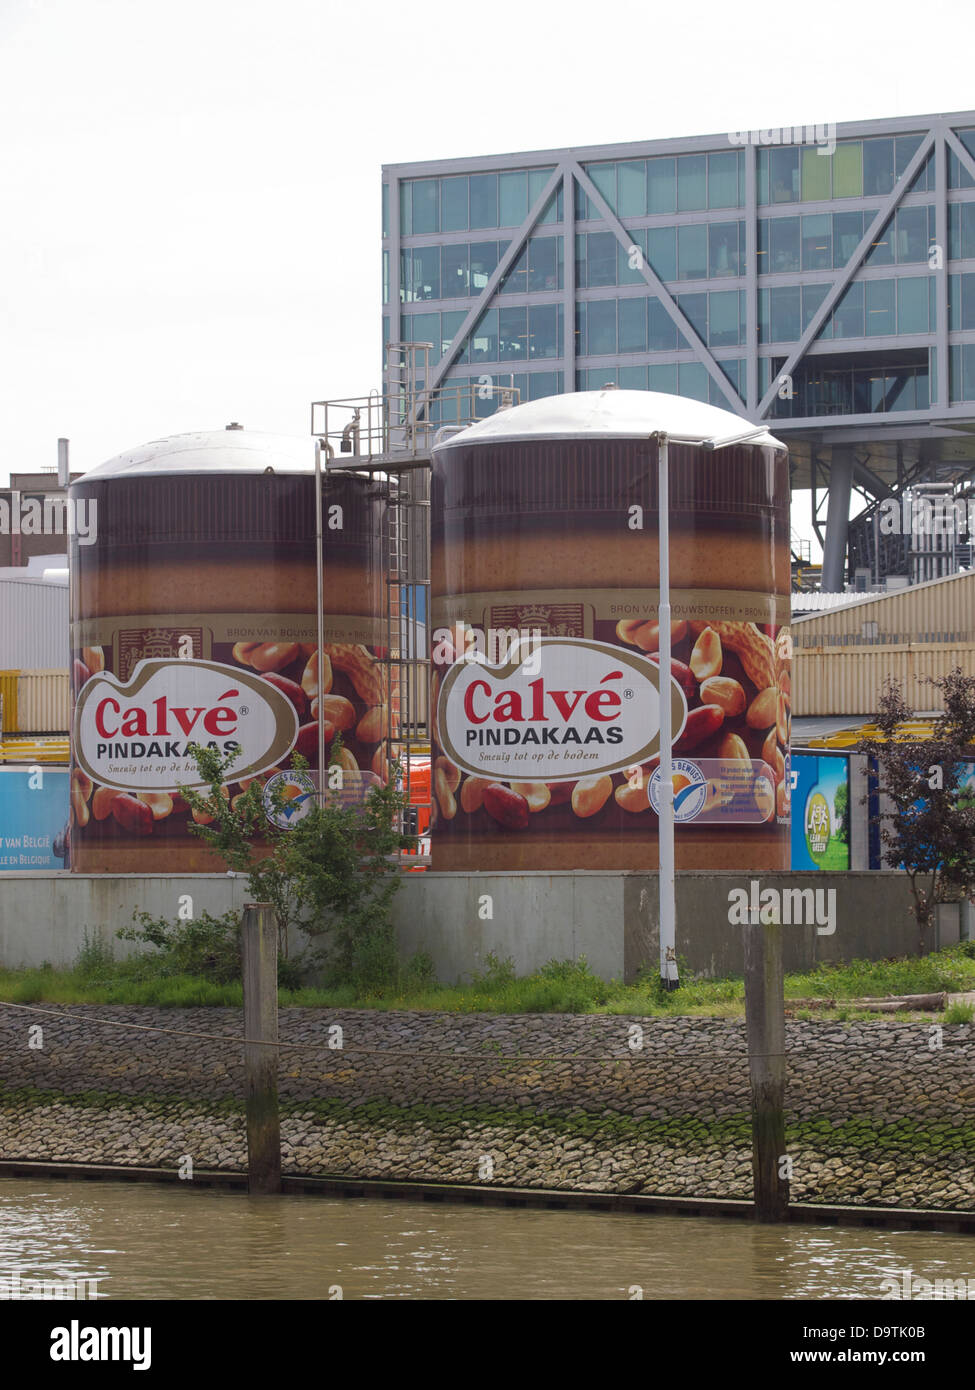 two silos disguised as Calve peanut butter jars at the Unilever office in Rotterdam, the Netherlands - Stock Image